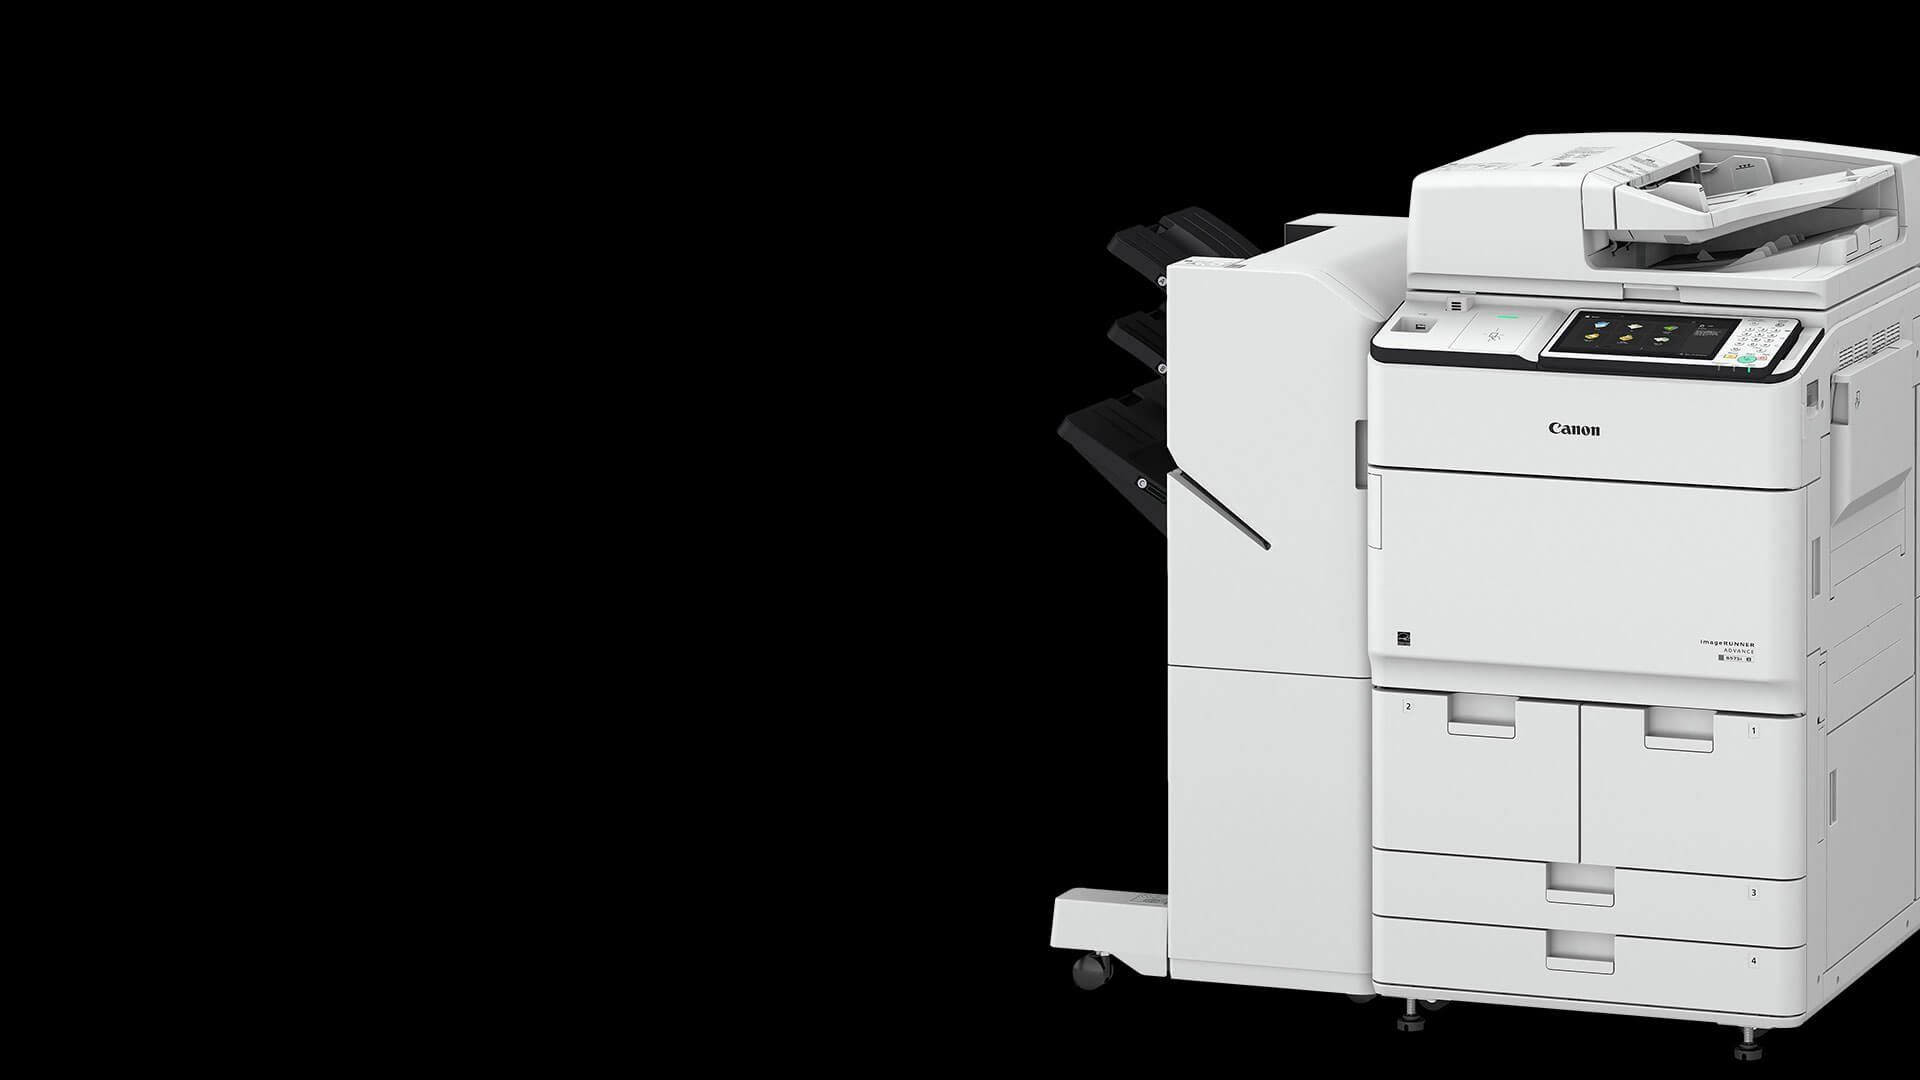 imageRUNNER ADVANCE C6500 III series